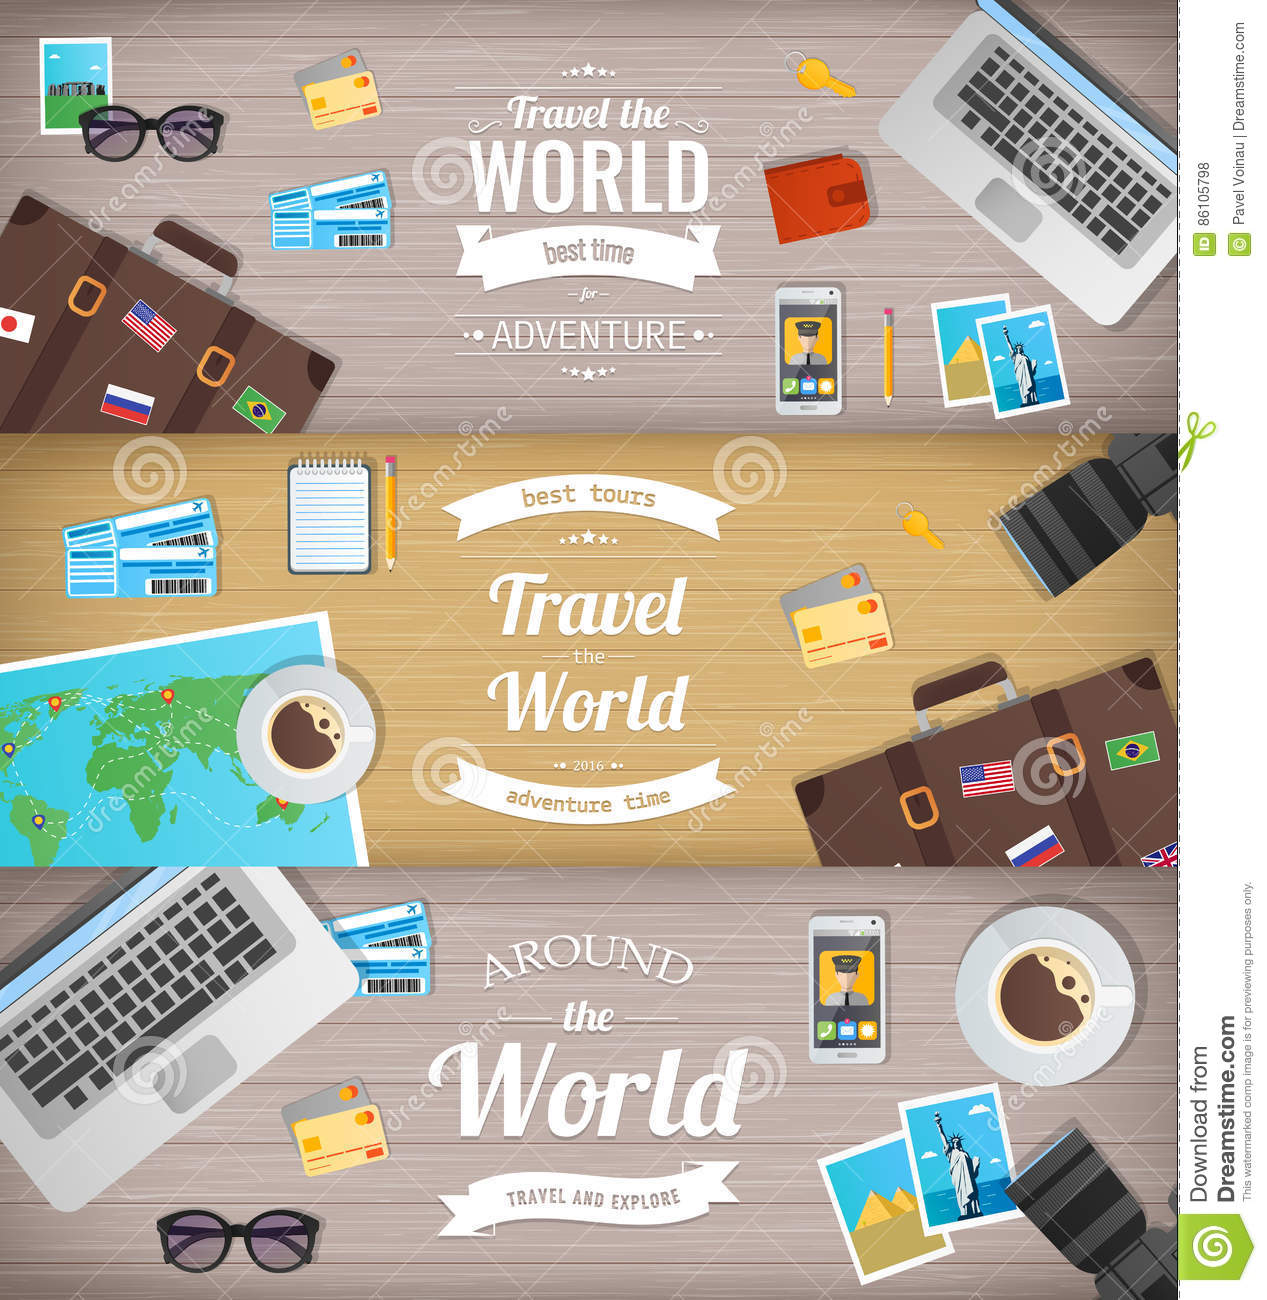 Travel Banners Travel And Tourism Web Banner Objects On Wooden Background Flat Design Vector Stock Vector Illustration Of Laptop Journey 86105798